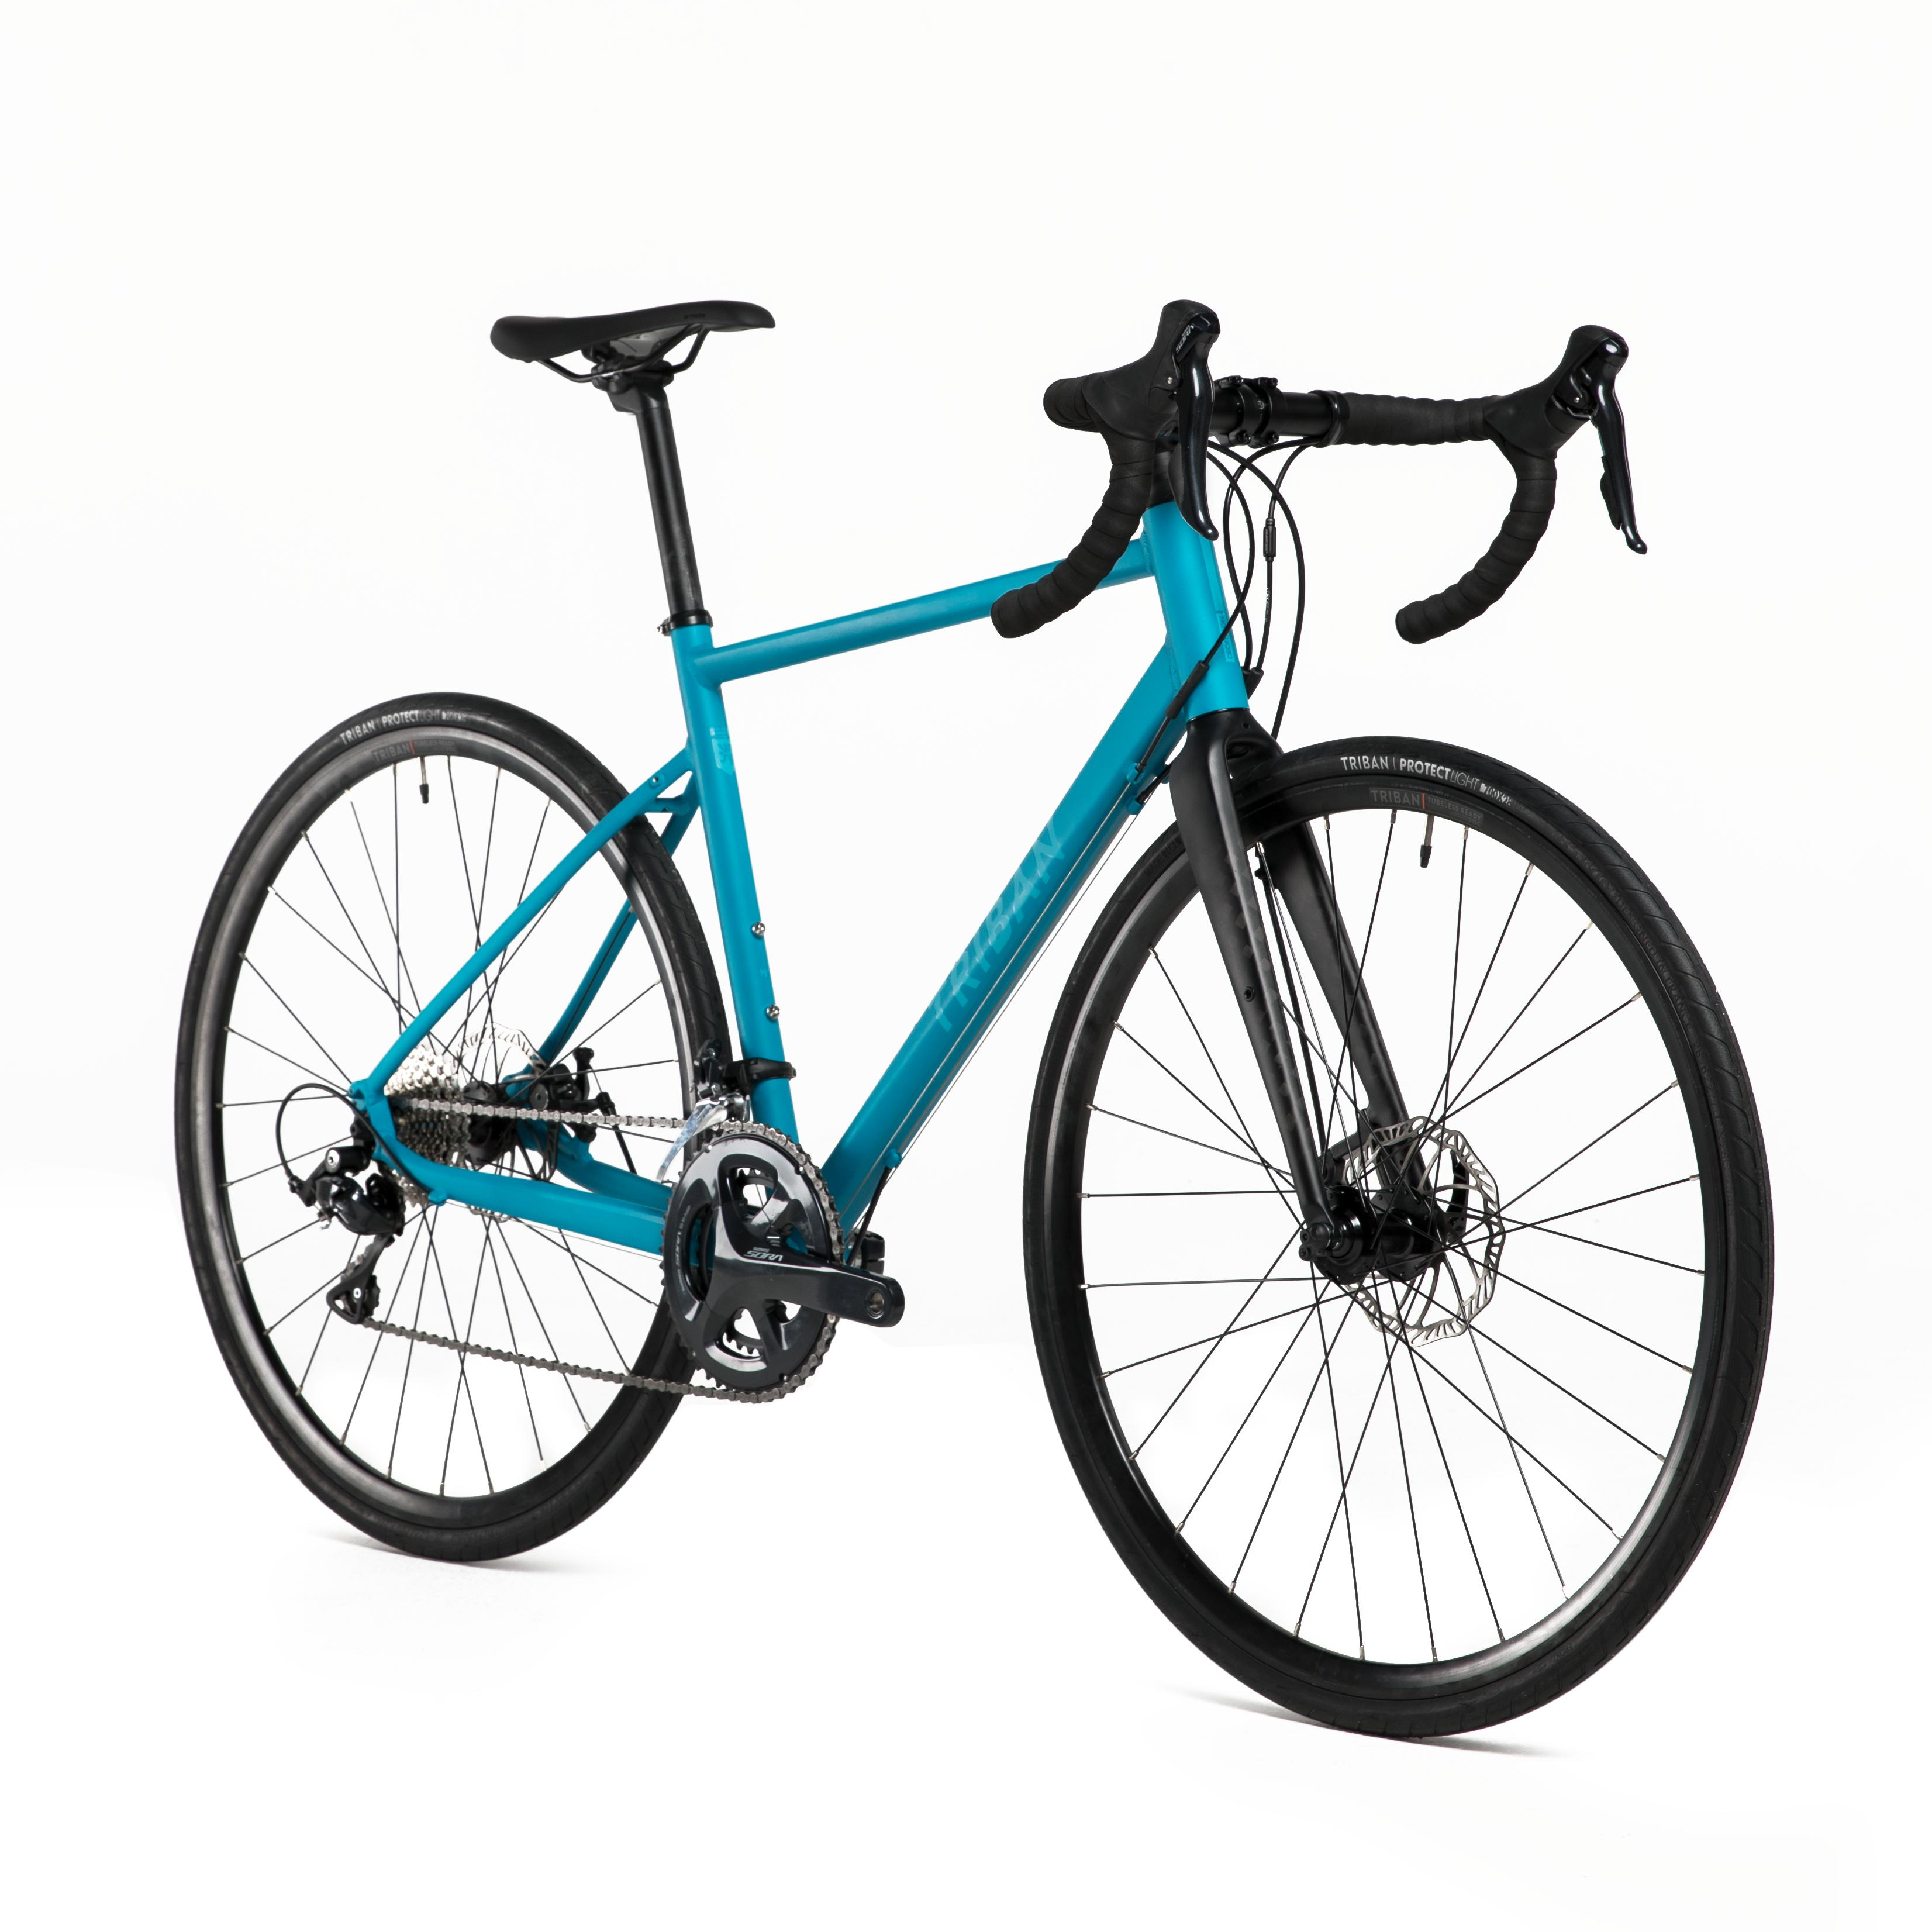 Road Cycling Bike Triban Rc 500 Cycle Touring Road Bike Cn Triban